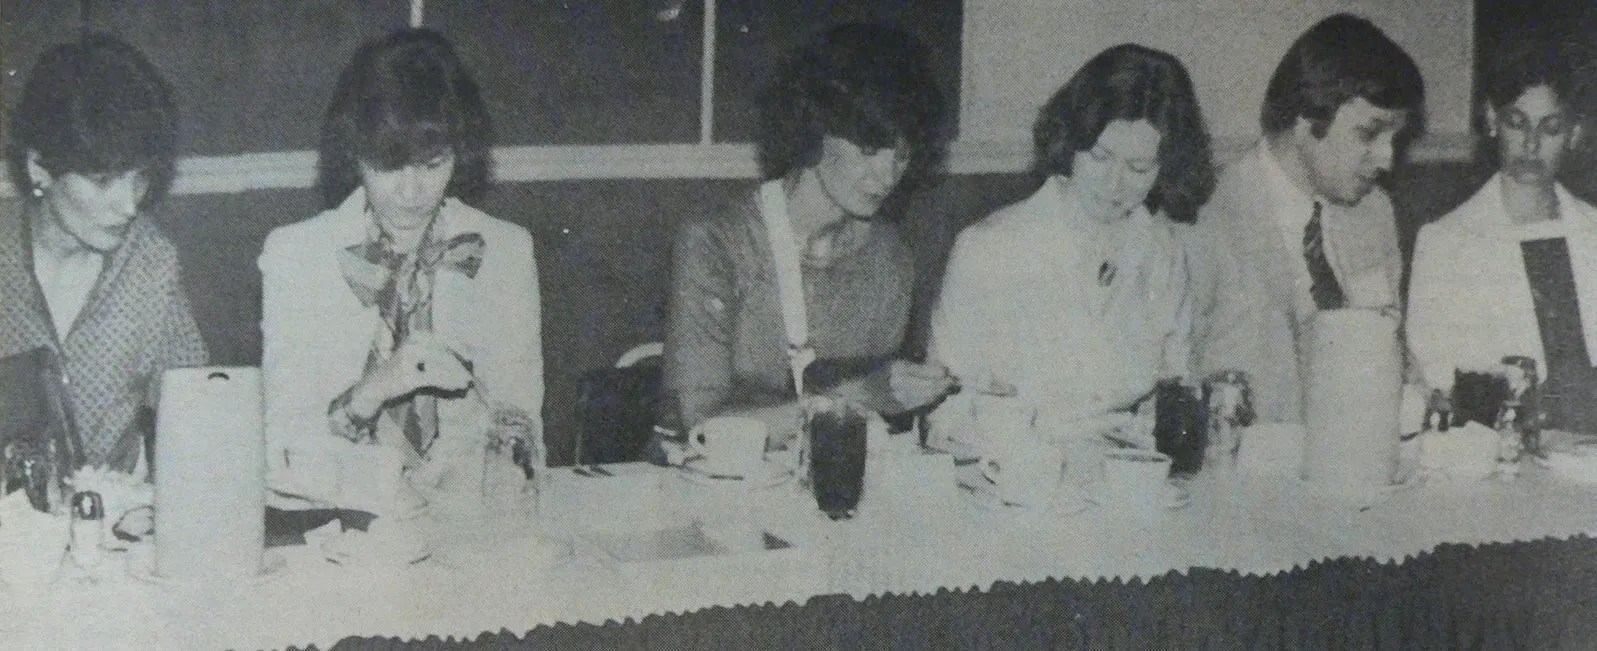 At the head table for the Women in Newspapers Seminar were, from left, Nancy Woodhull of Rochester, N.Y., Pat McNeely of USC School of Journalism, Mary Scott Derrick of Hilton Head island, Emily Cooper of Edgefield, Cyril Washer of Columbia, and Dottie Foster of Myrtle Beach.